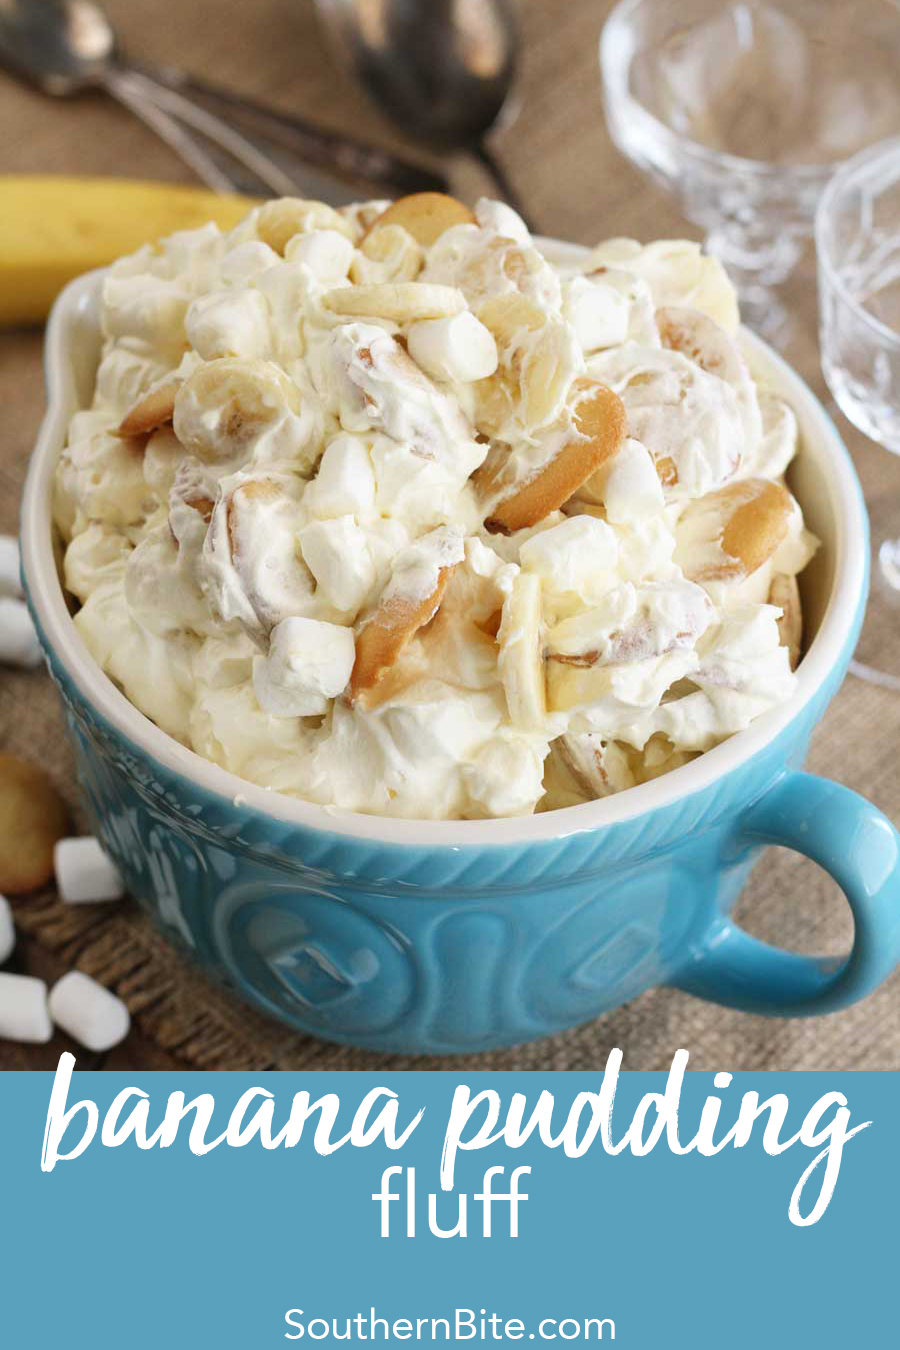 This Banana Pudding Fluff recipe is a fun and easy twist on a Southern classic!